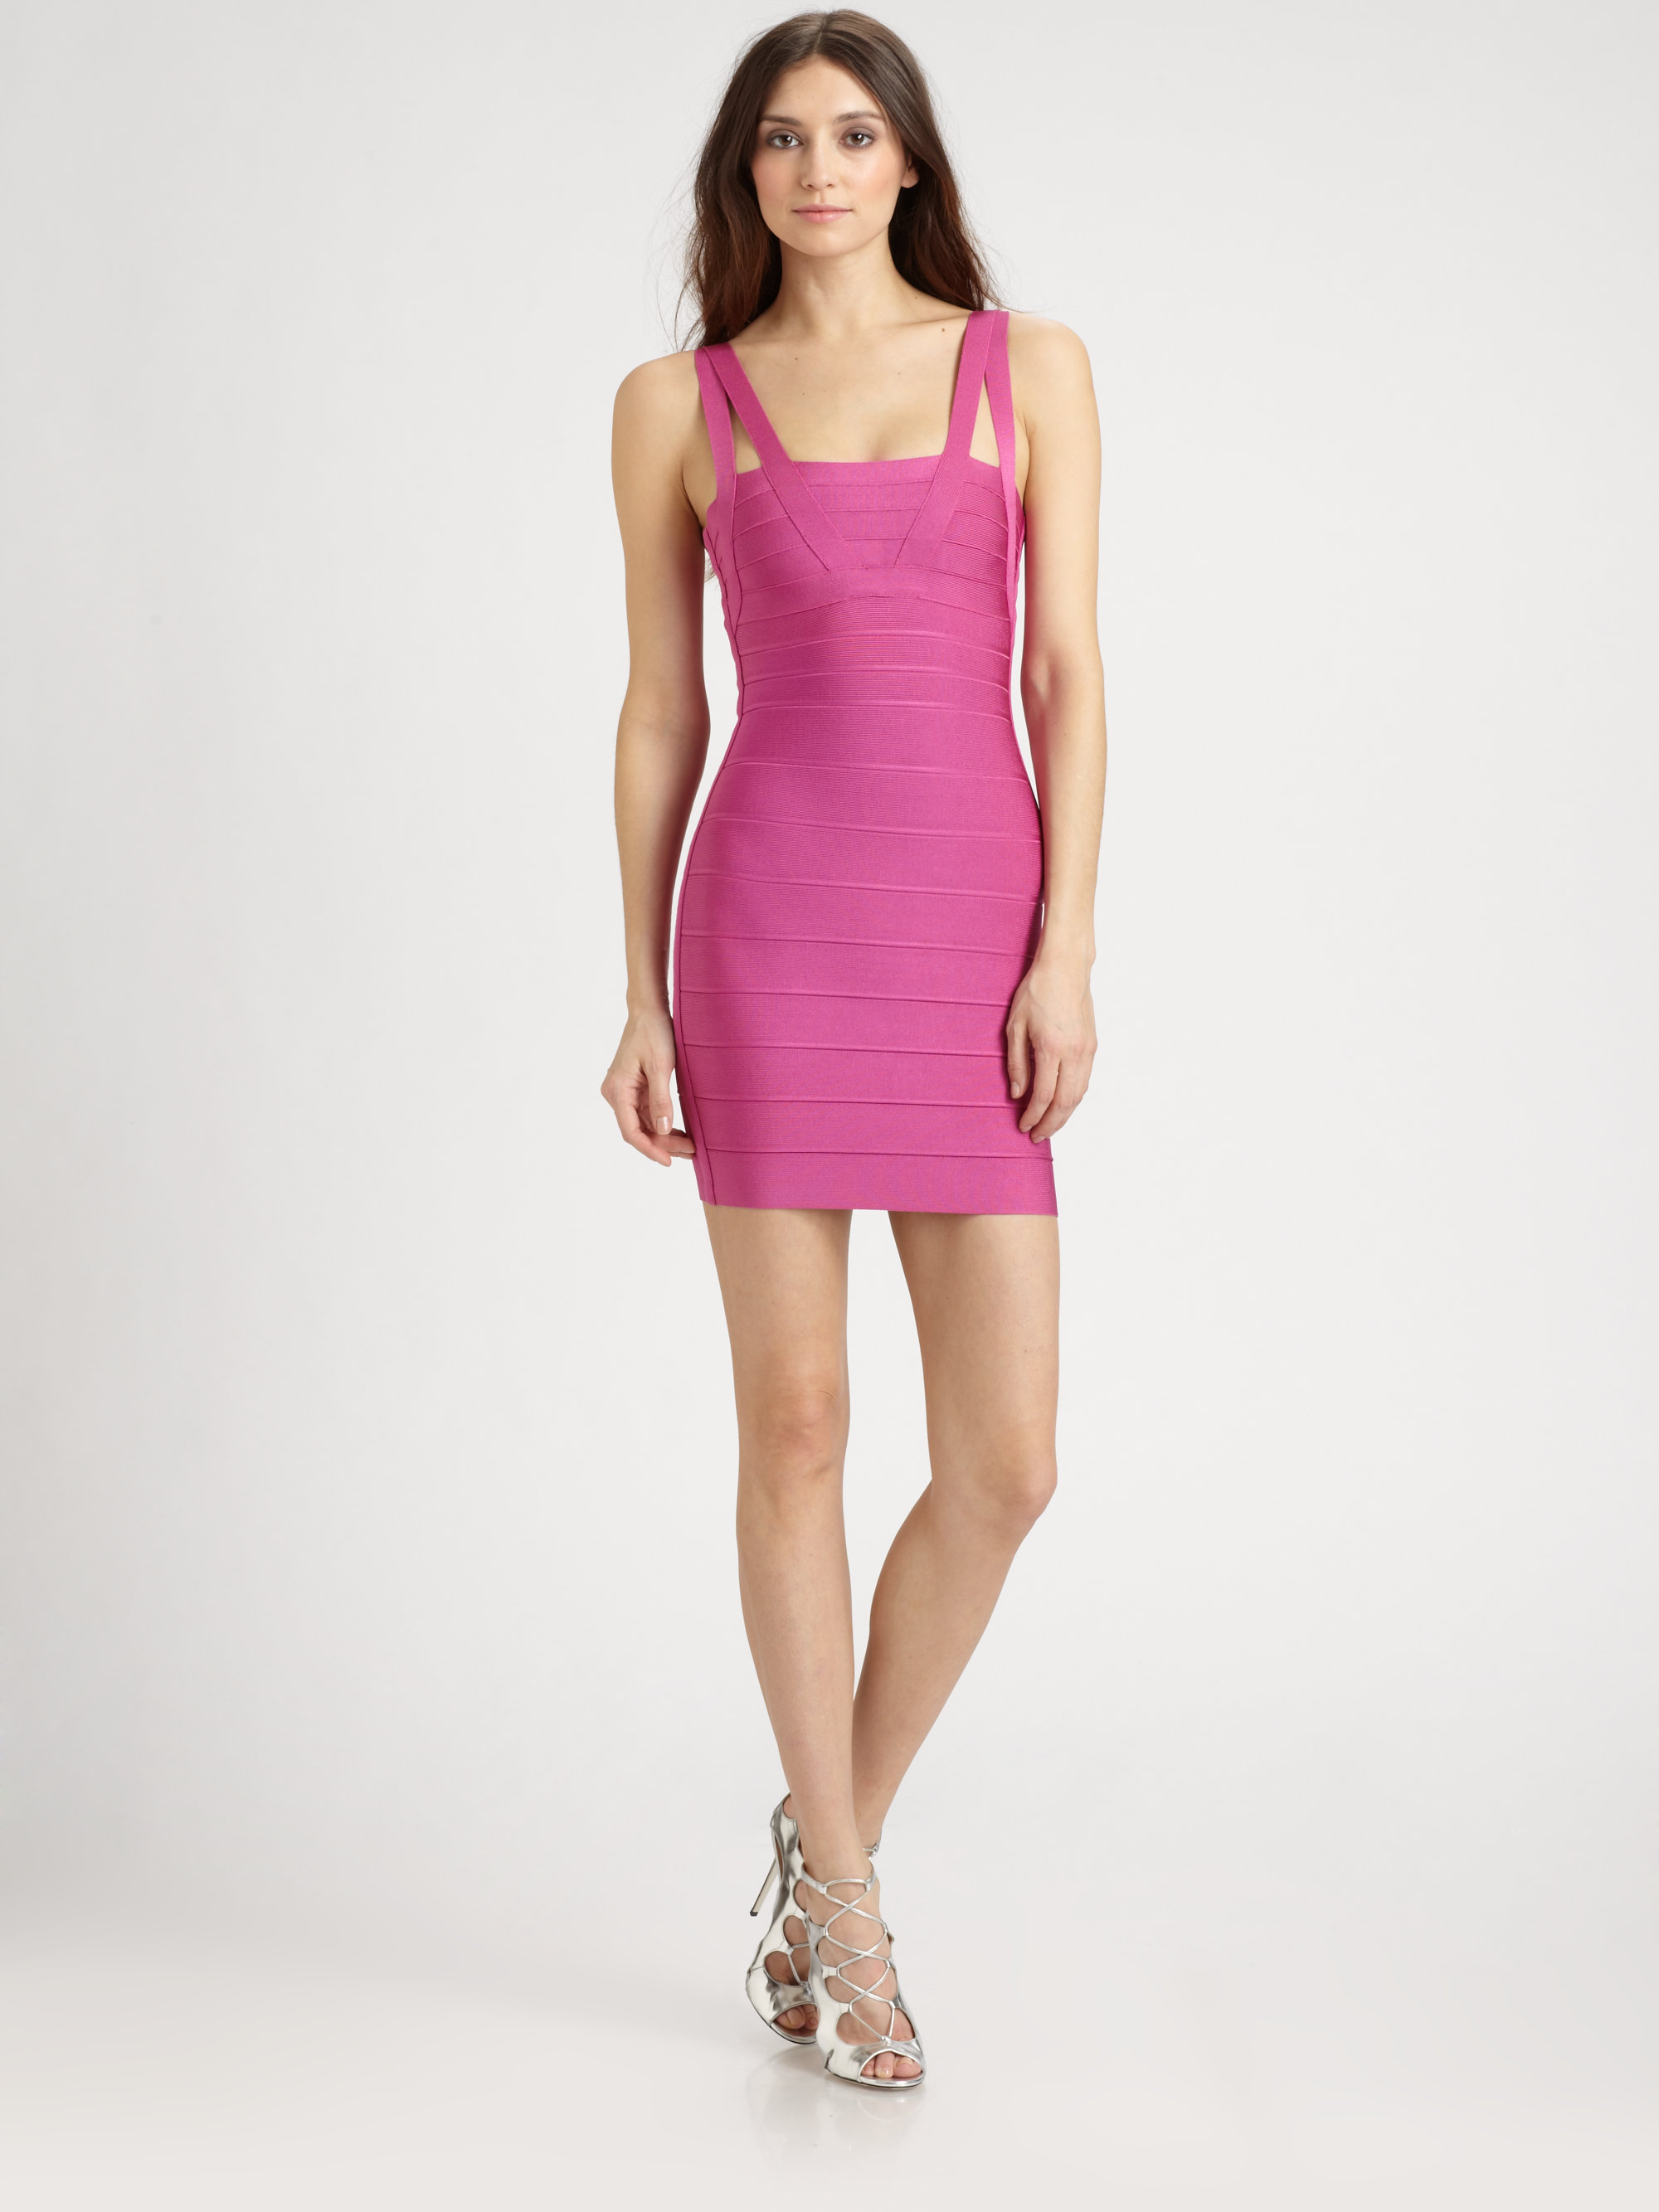 Lyst Herv 233 L 233 Ger Zinnia Bandage Dress In Pink